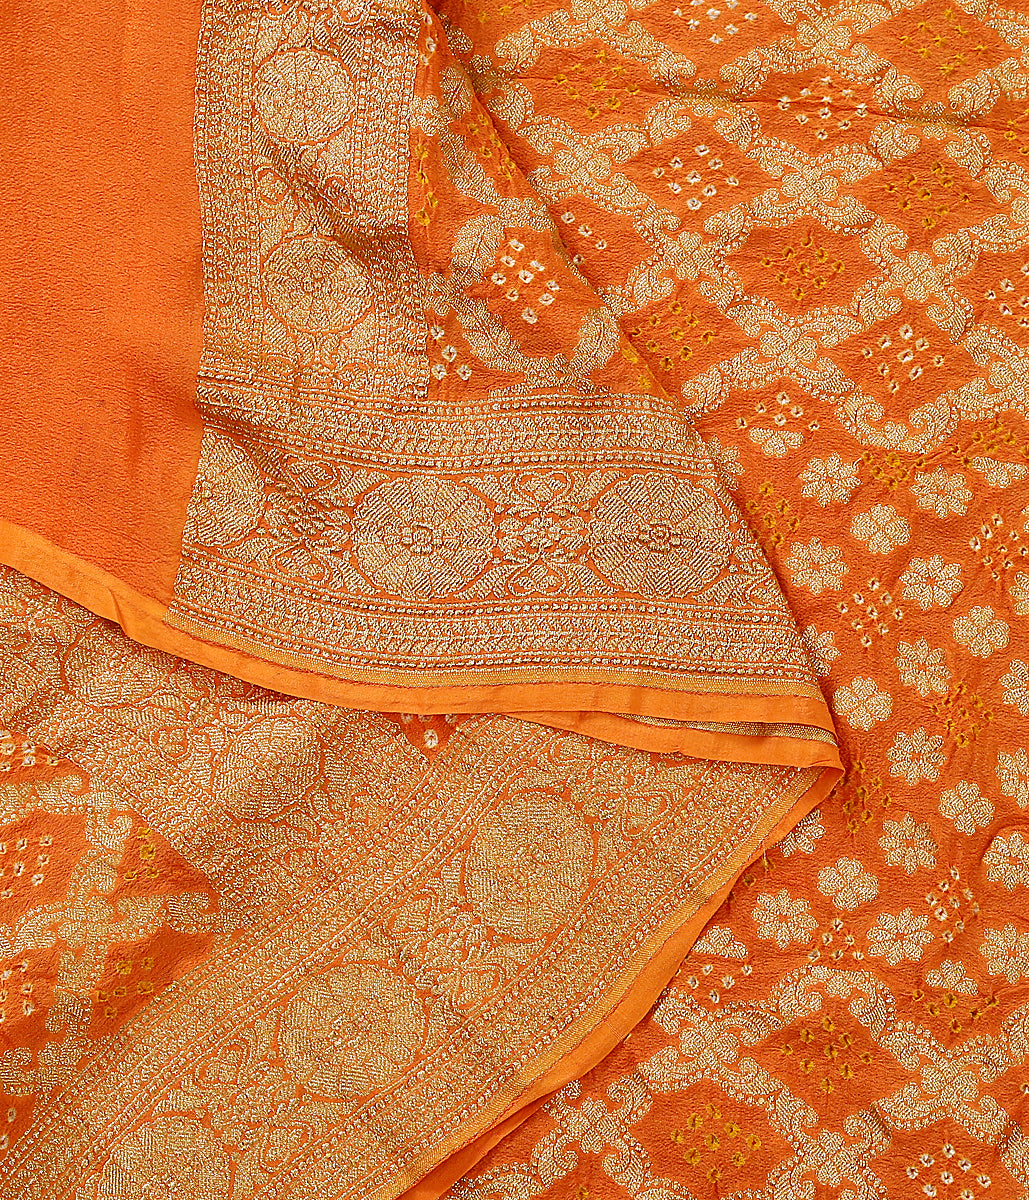 Handloom Banarasi Bandhej Dupatta in bright orange